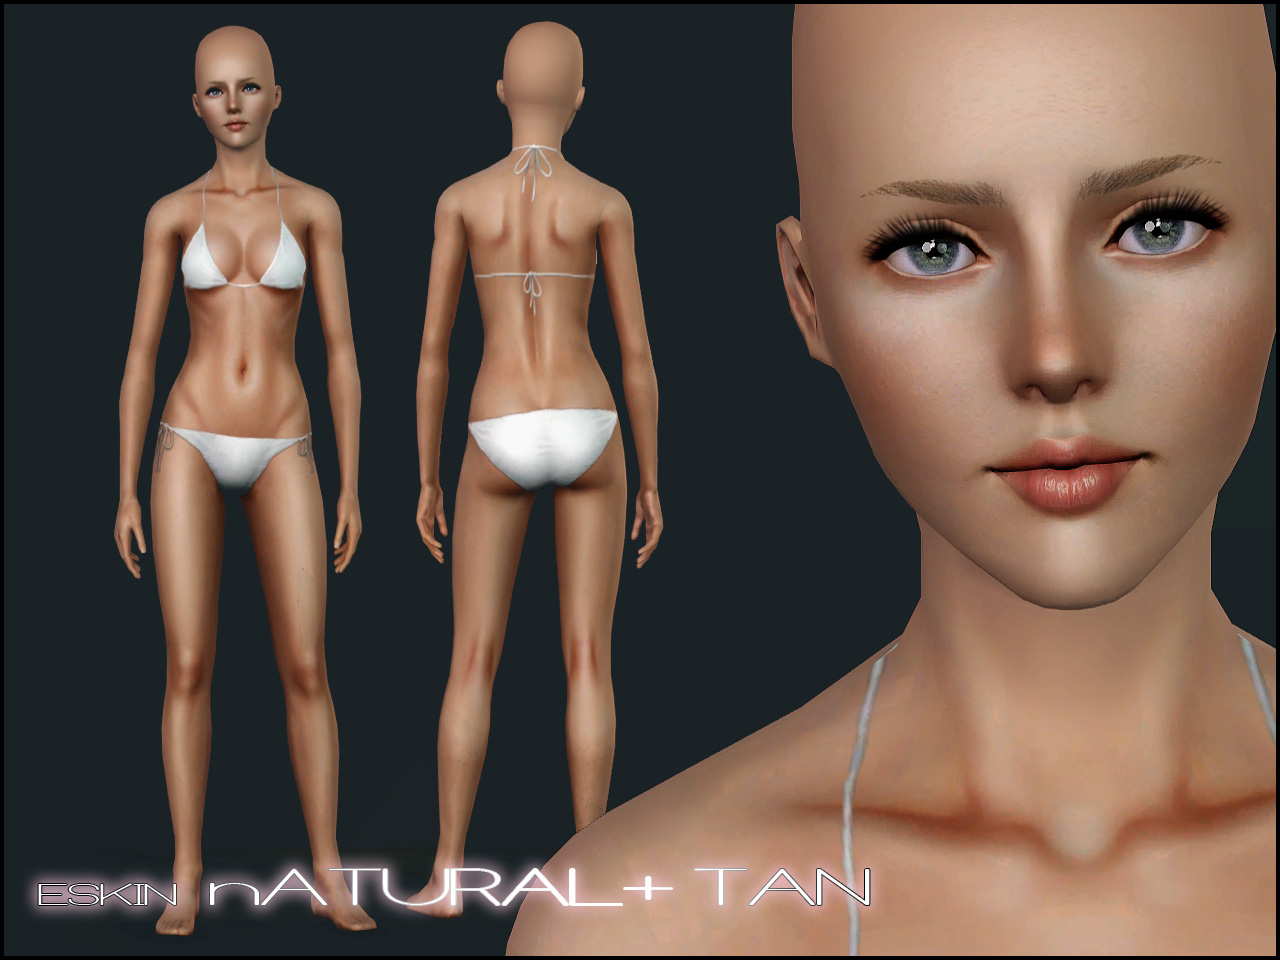 Elf default skin replacements sims2 naked photos